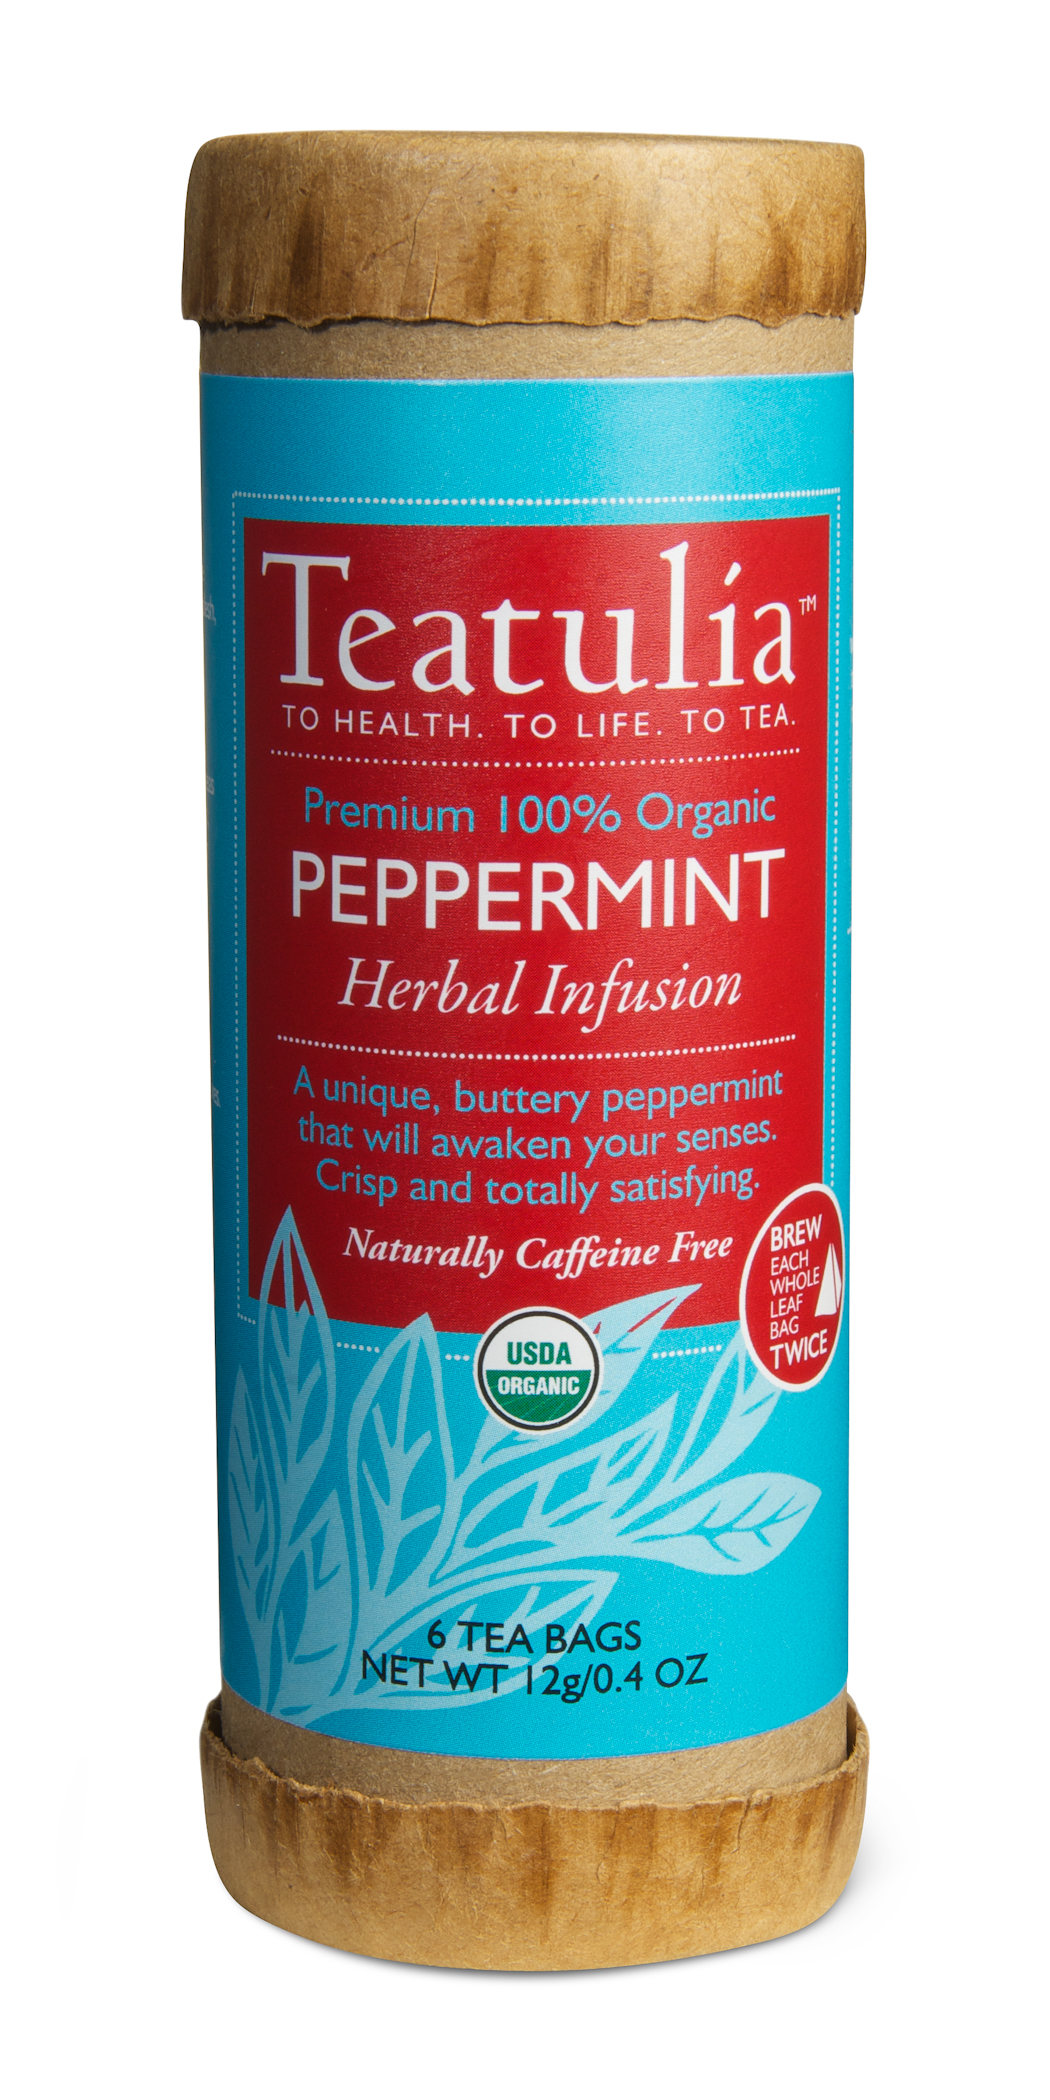 Peppermint Herbal Infusion, By Teatulia